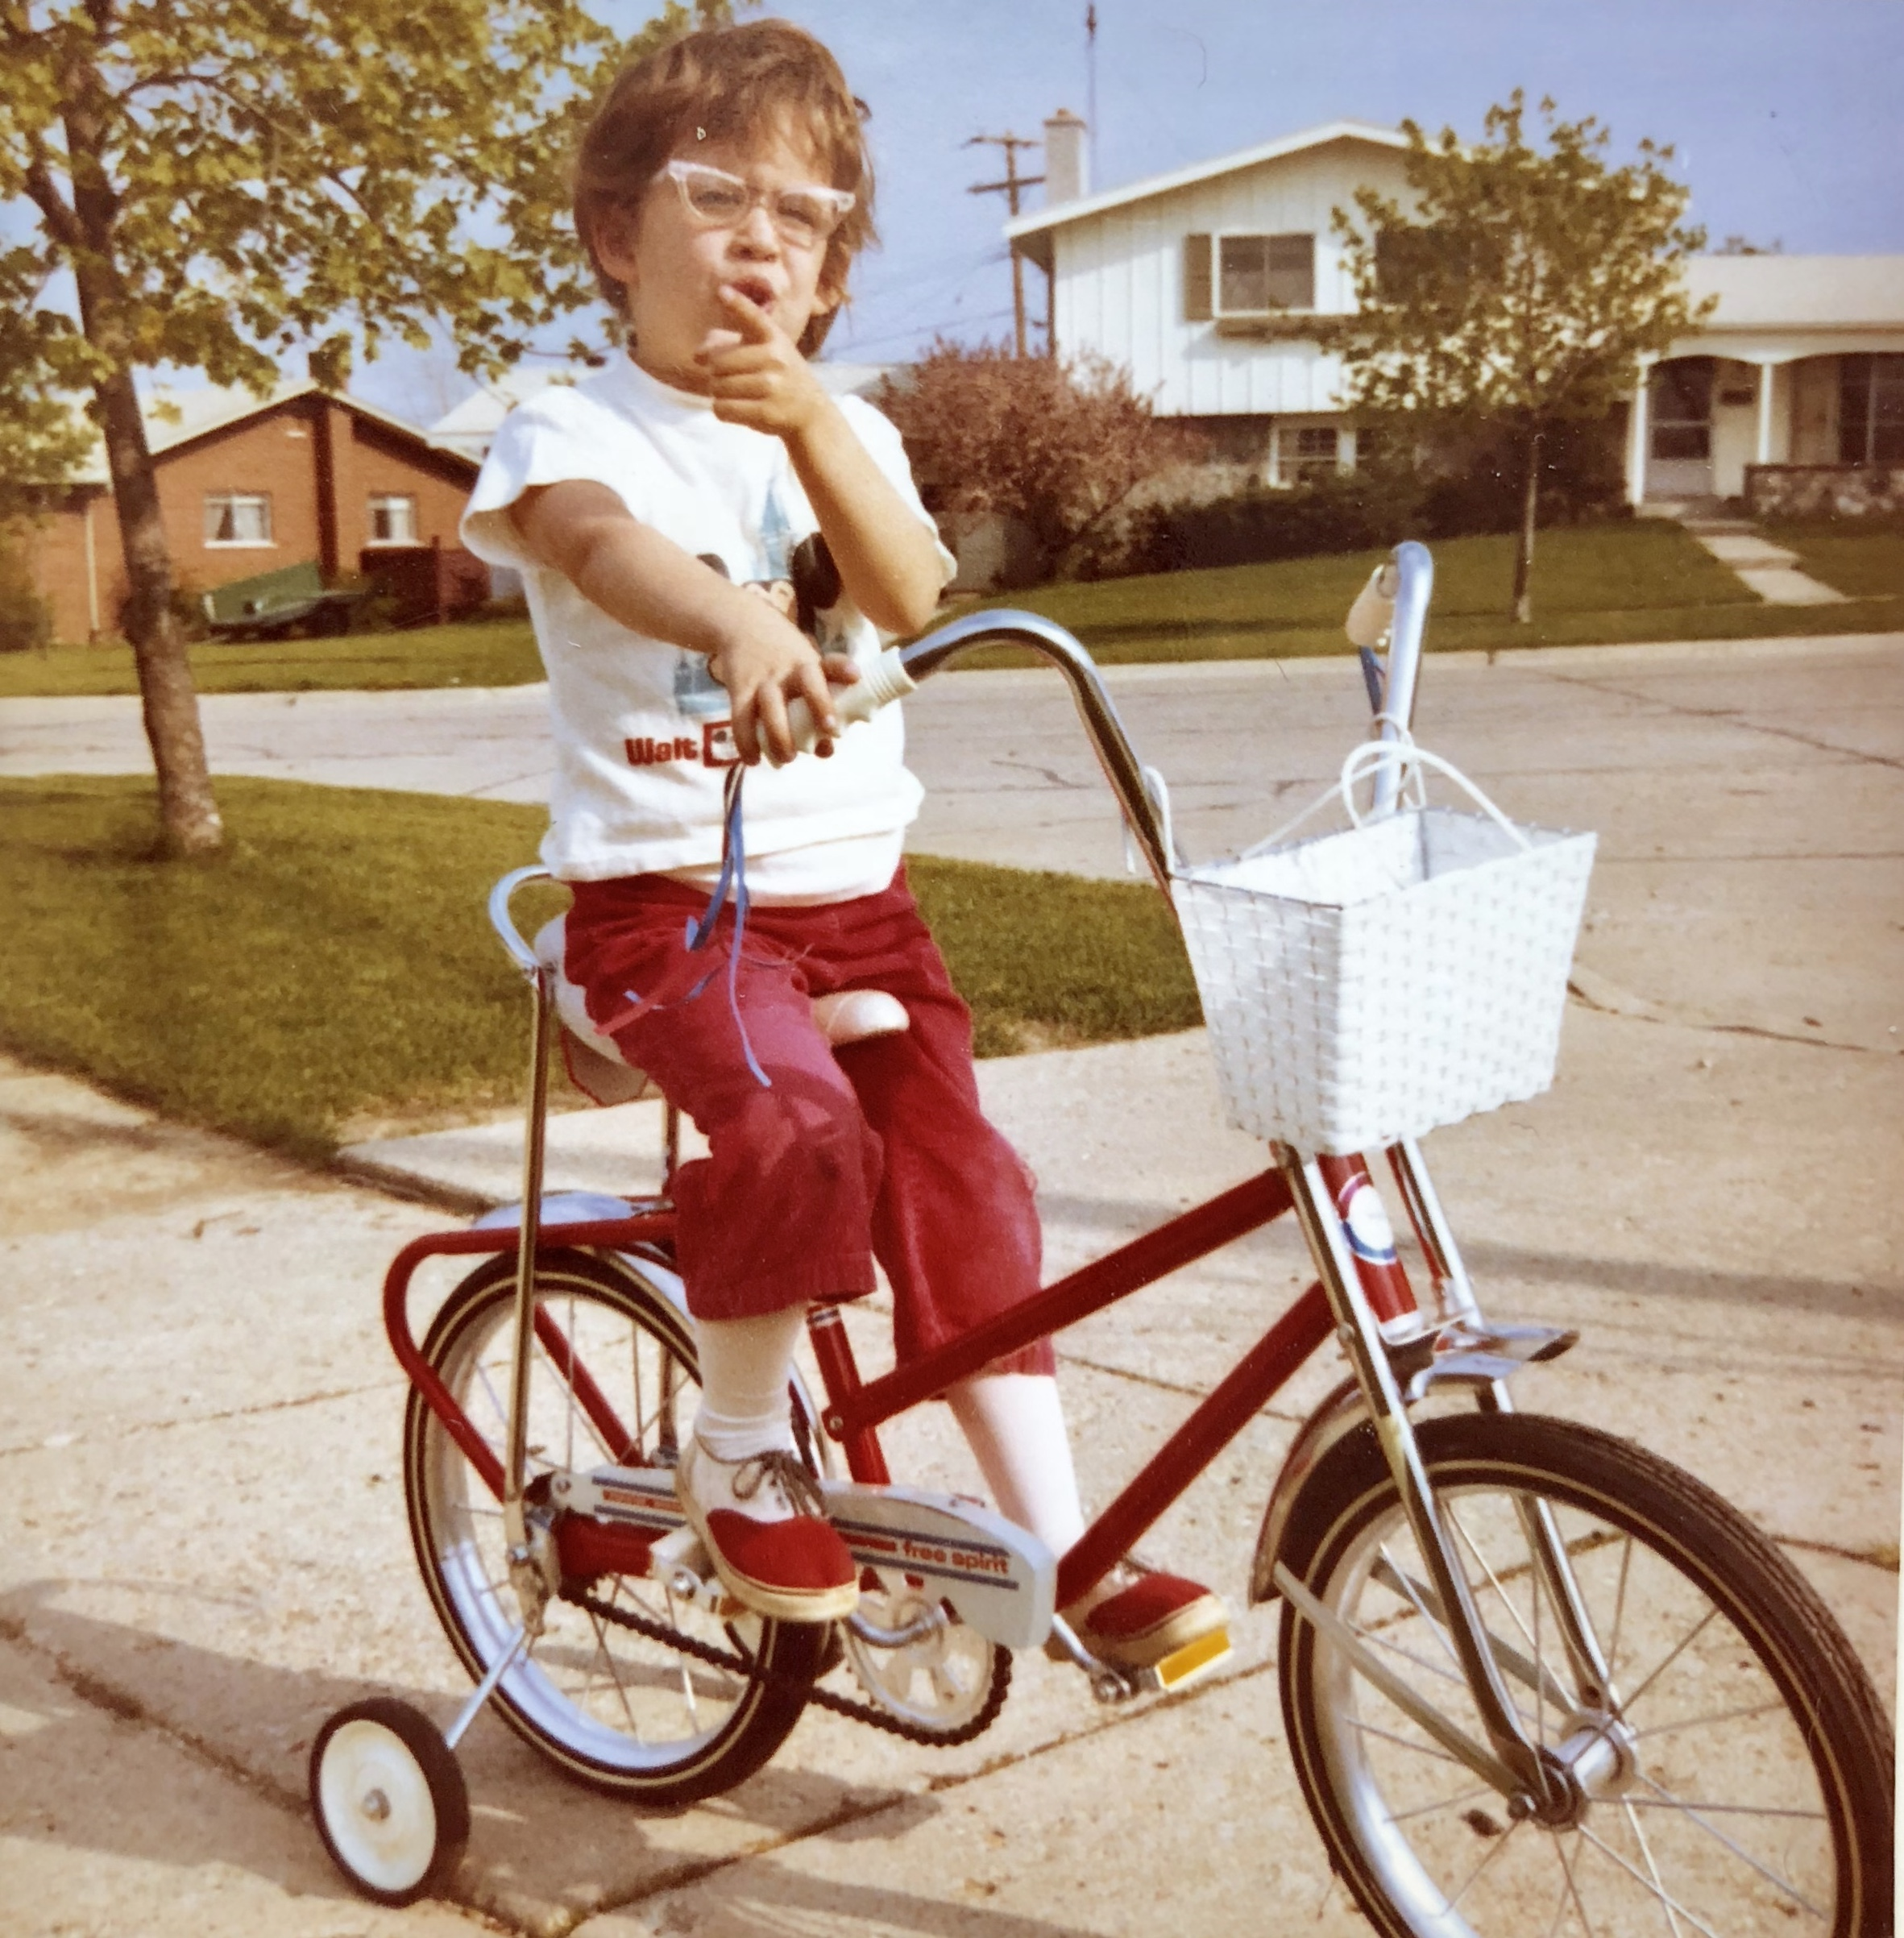 obviously In april of 1972 I had the trendy specs And a sweet ride to get around on, but clearly i was making a point to my parents that what i really needed was my first camera to go with it!